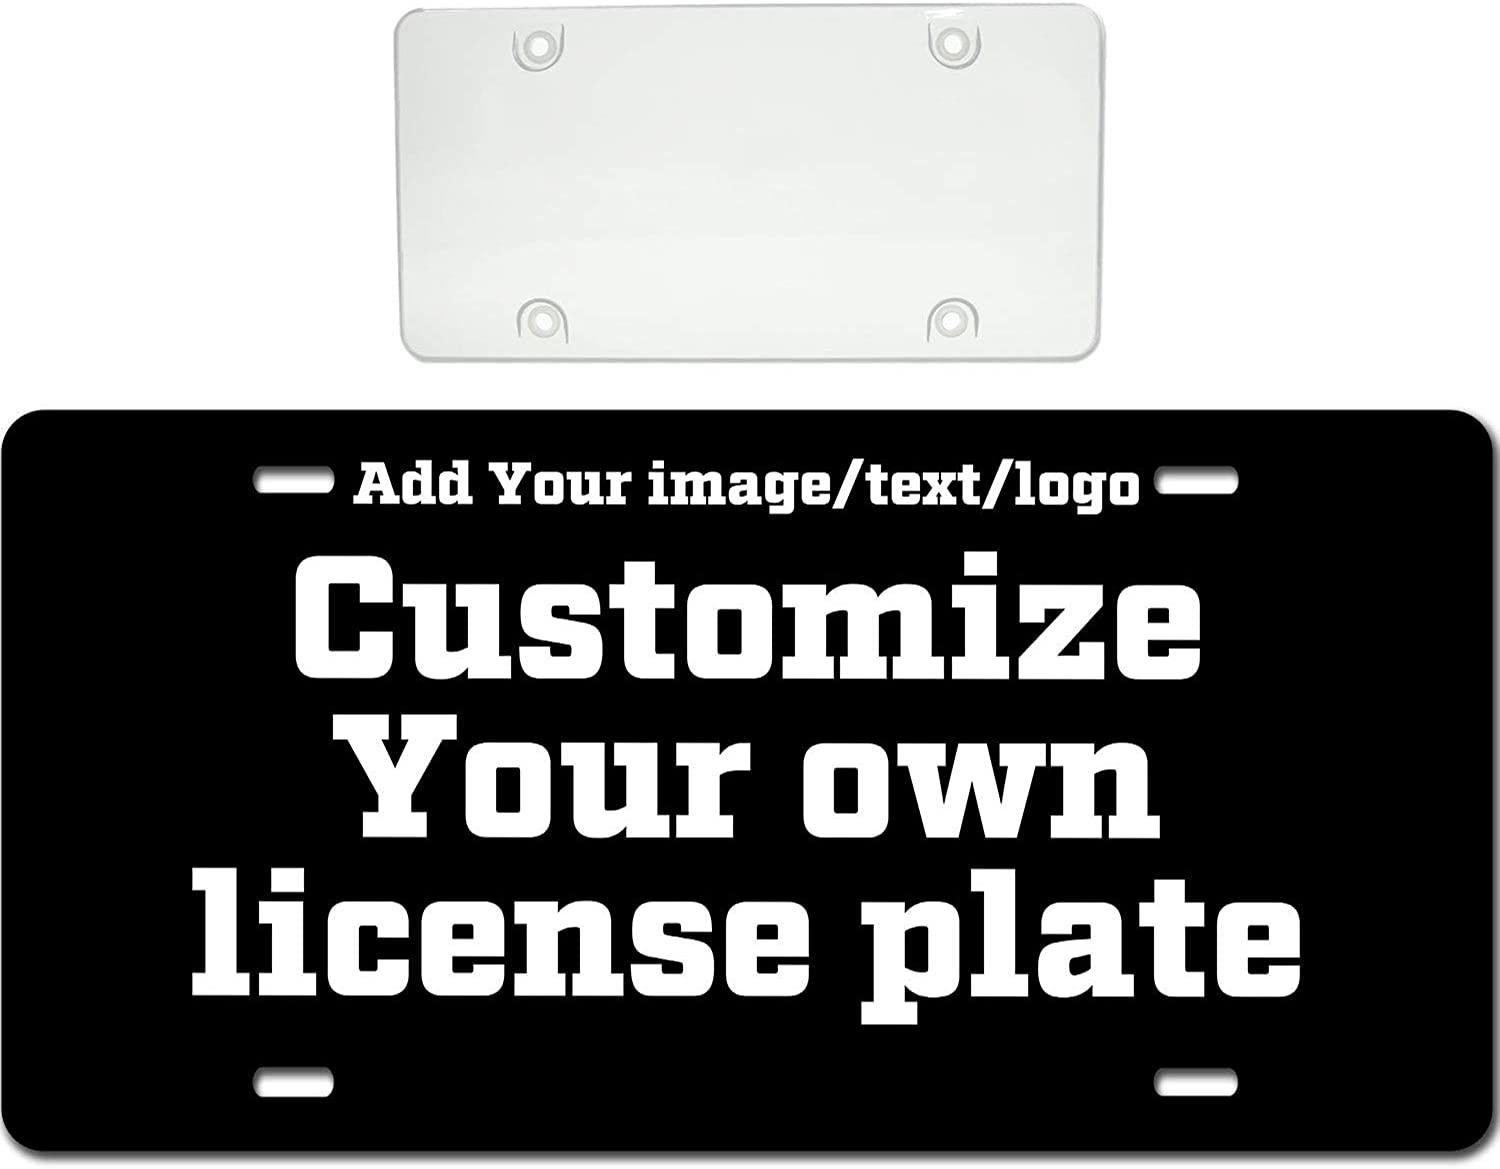 Custom Car Tags 6 x 12 Inch Personalized Aluminum Novelty Vanity License Plates Custom Personalized Front License Plates